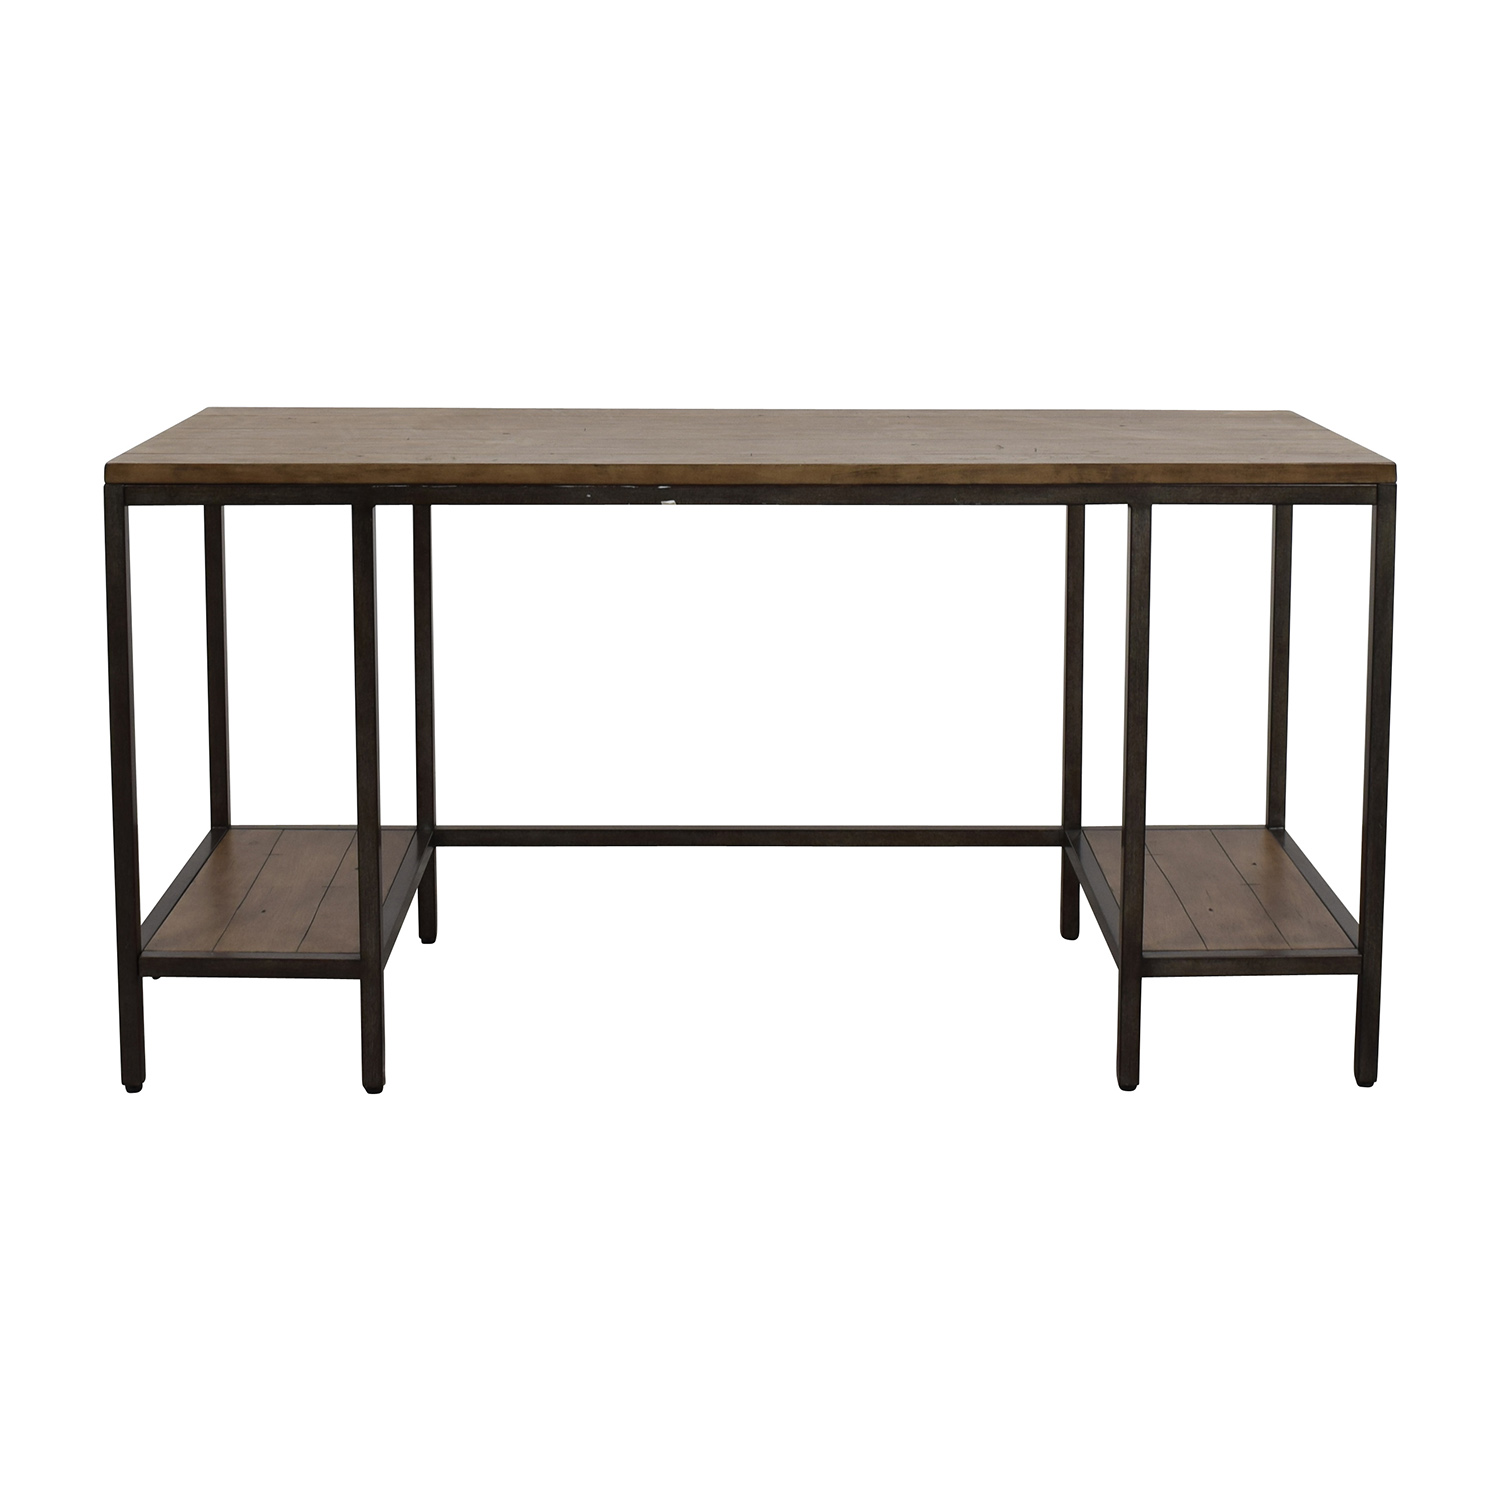 Buy Ballard Designs Durham Desk Online